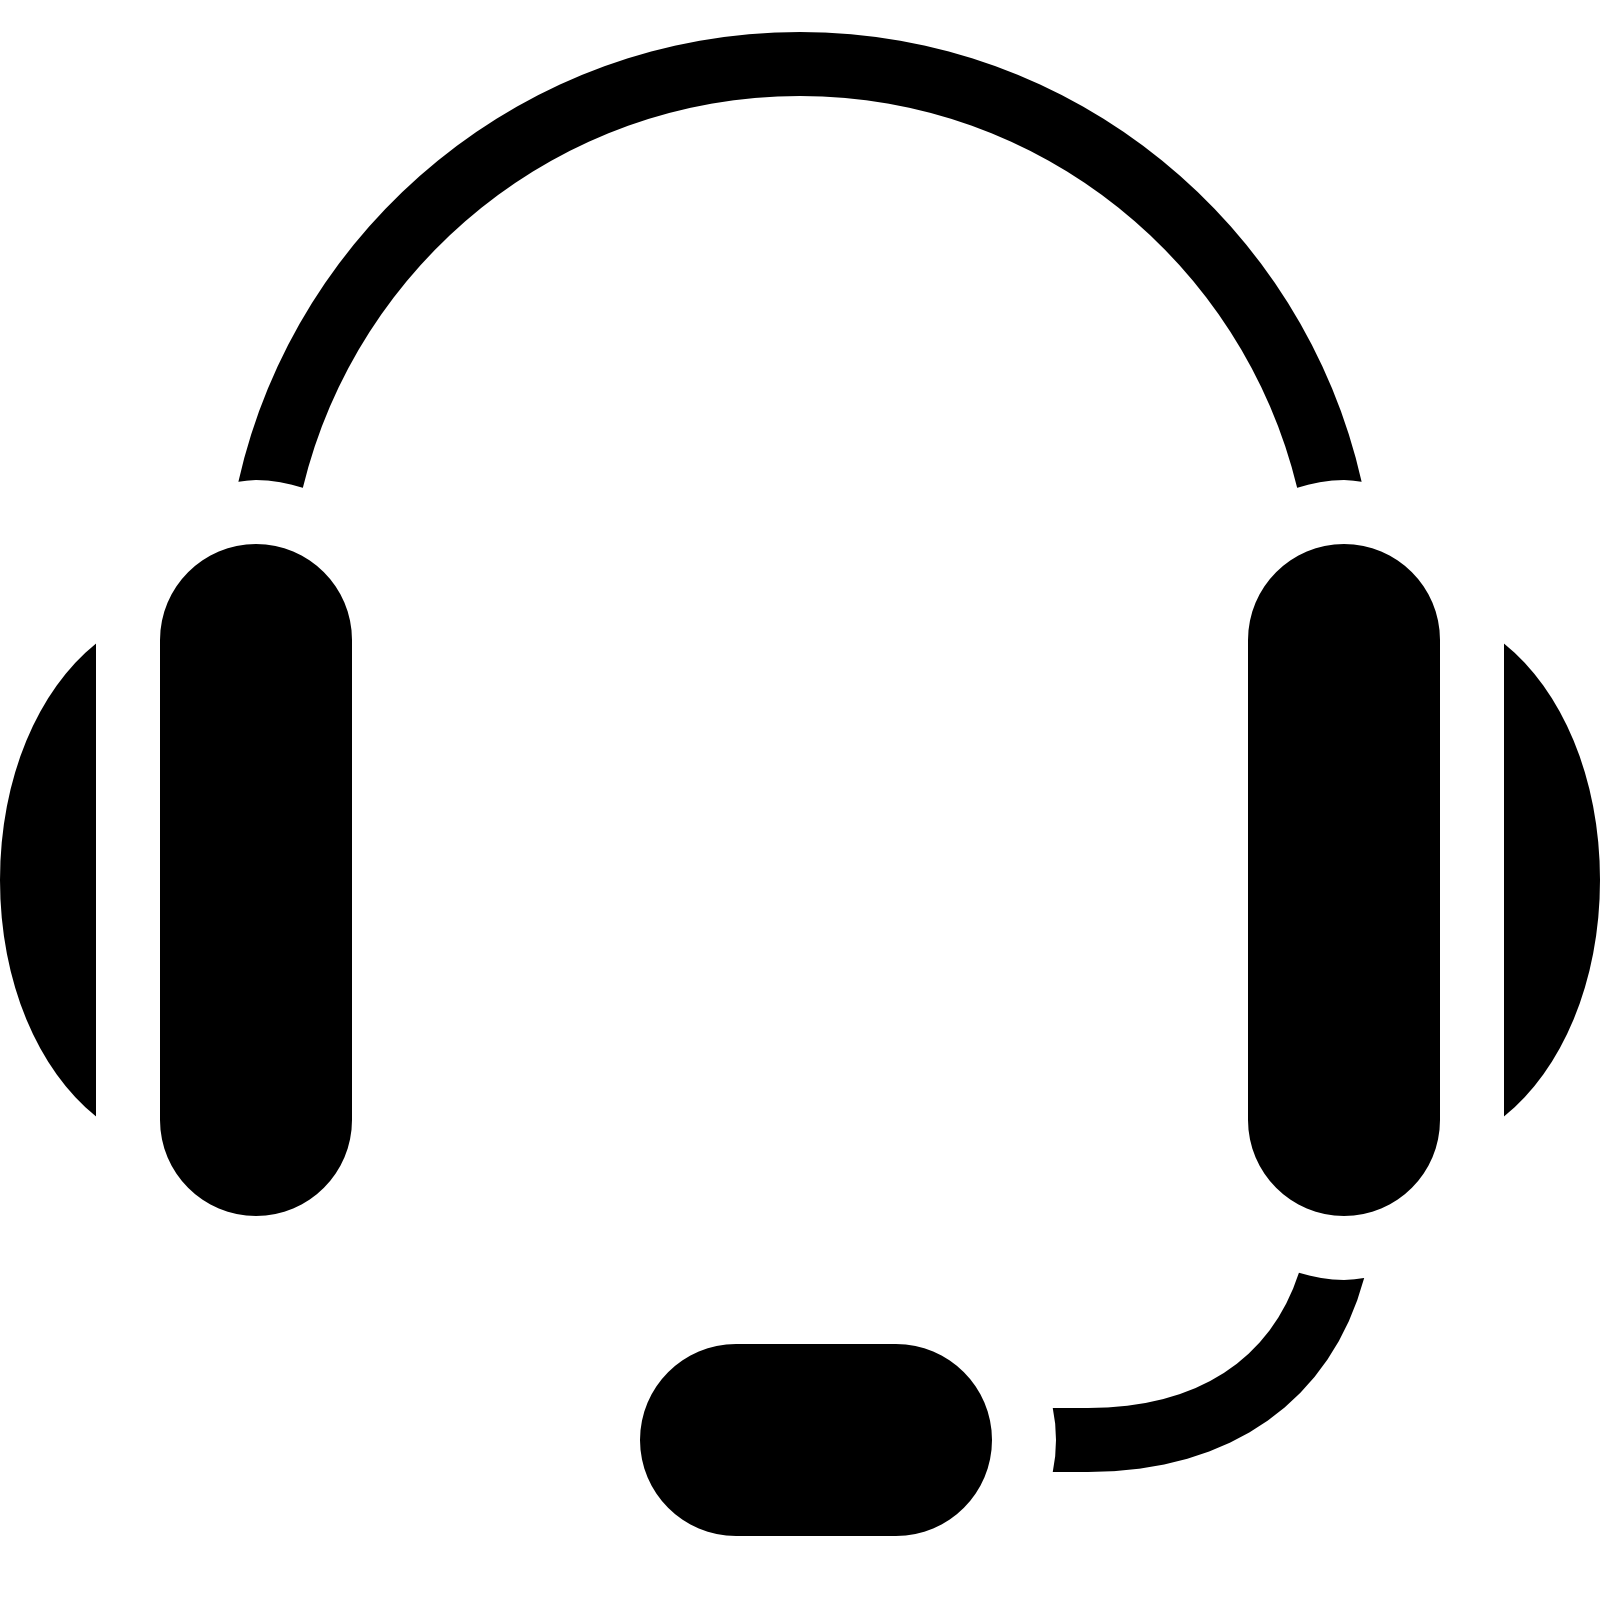 Gaming Headset transparent background PNG cliparts free download   HiClipart